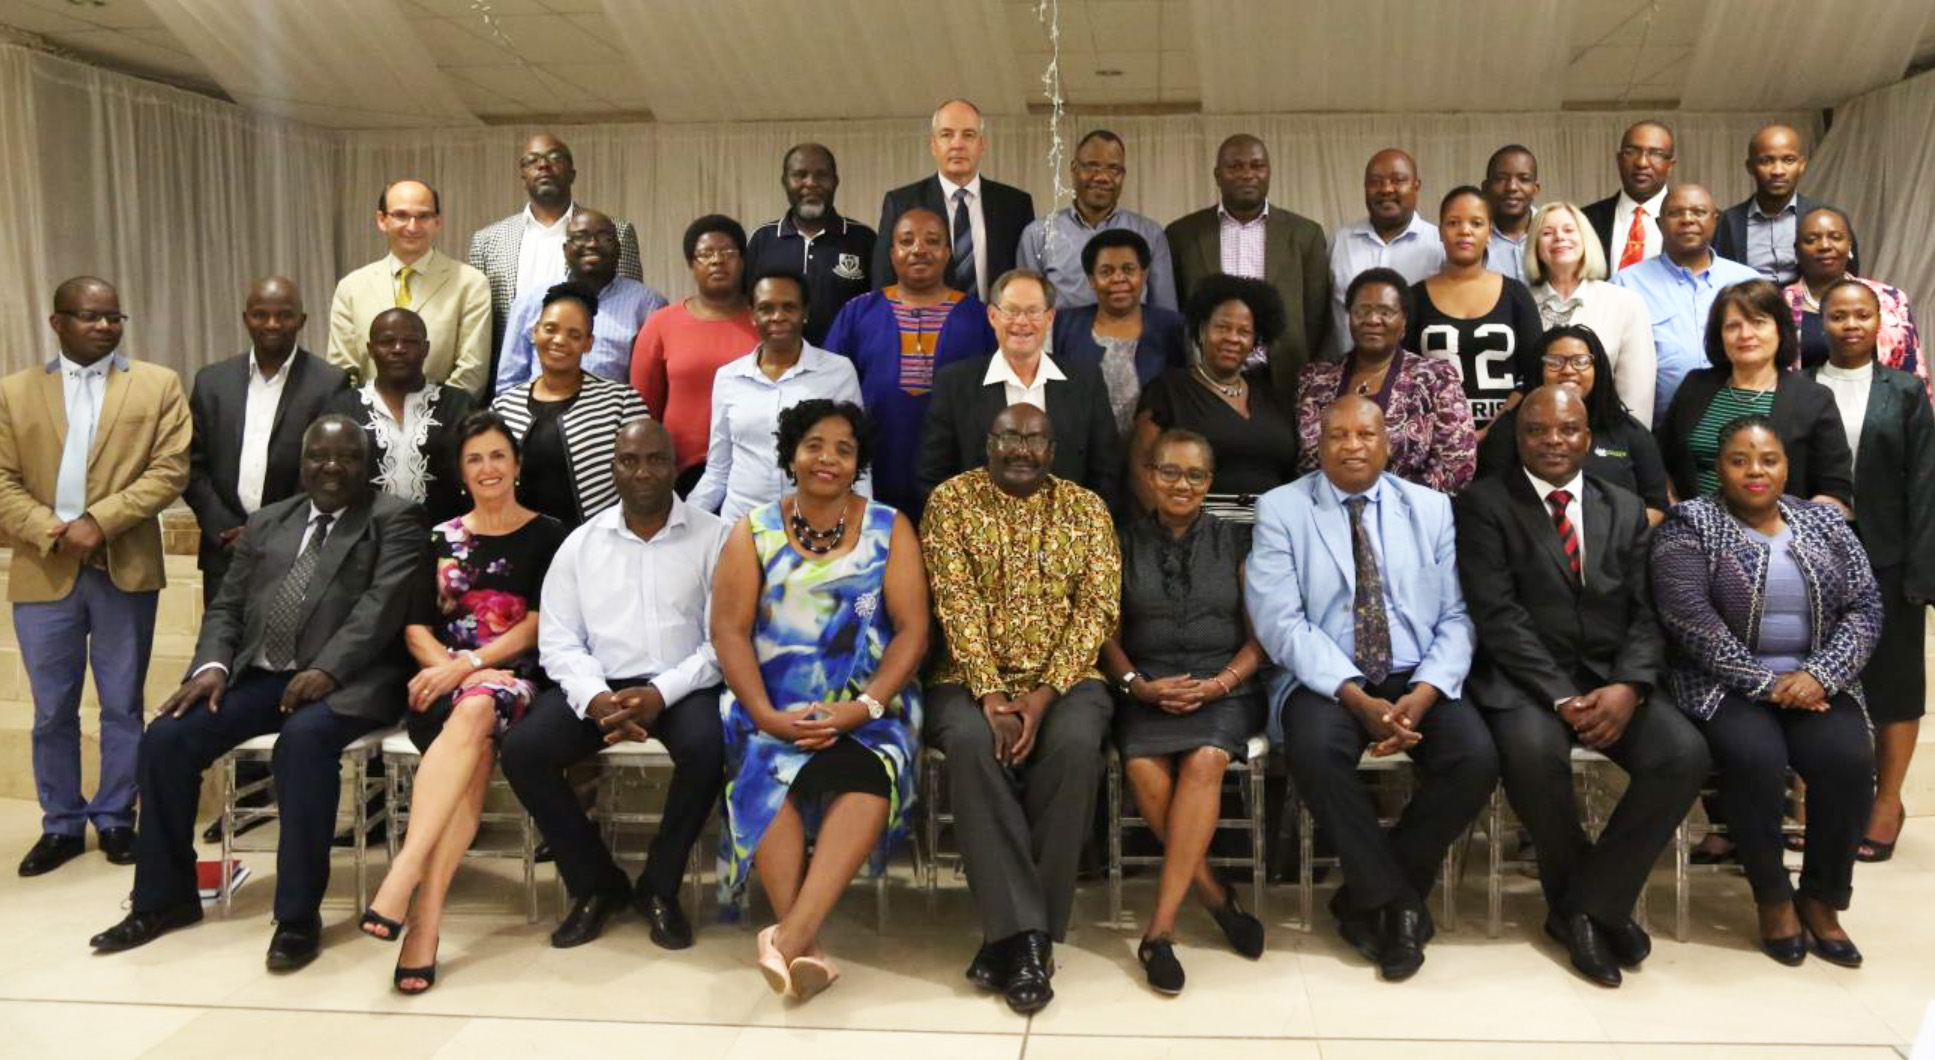 Parliamentary Portfolio Committee on Higher Education applauds Univen for good work